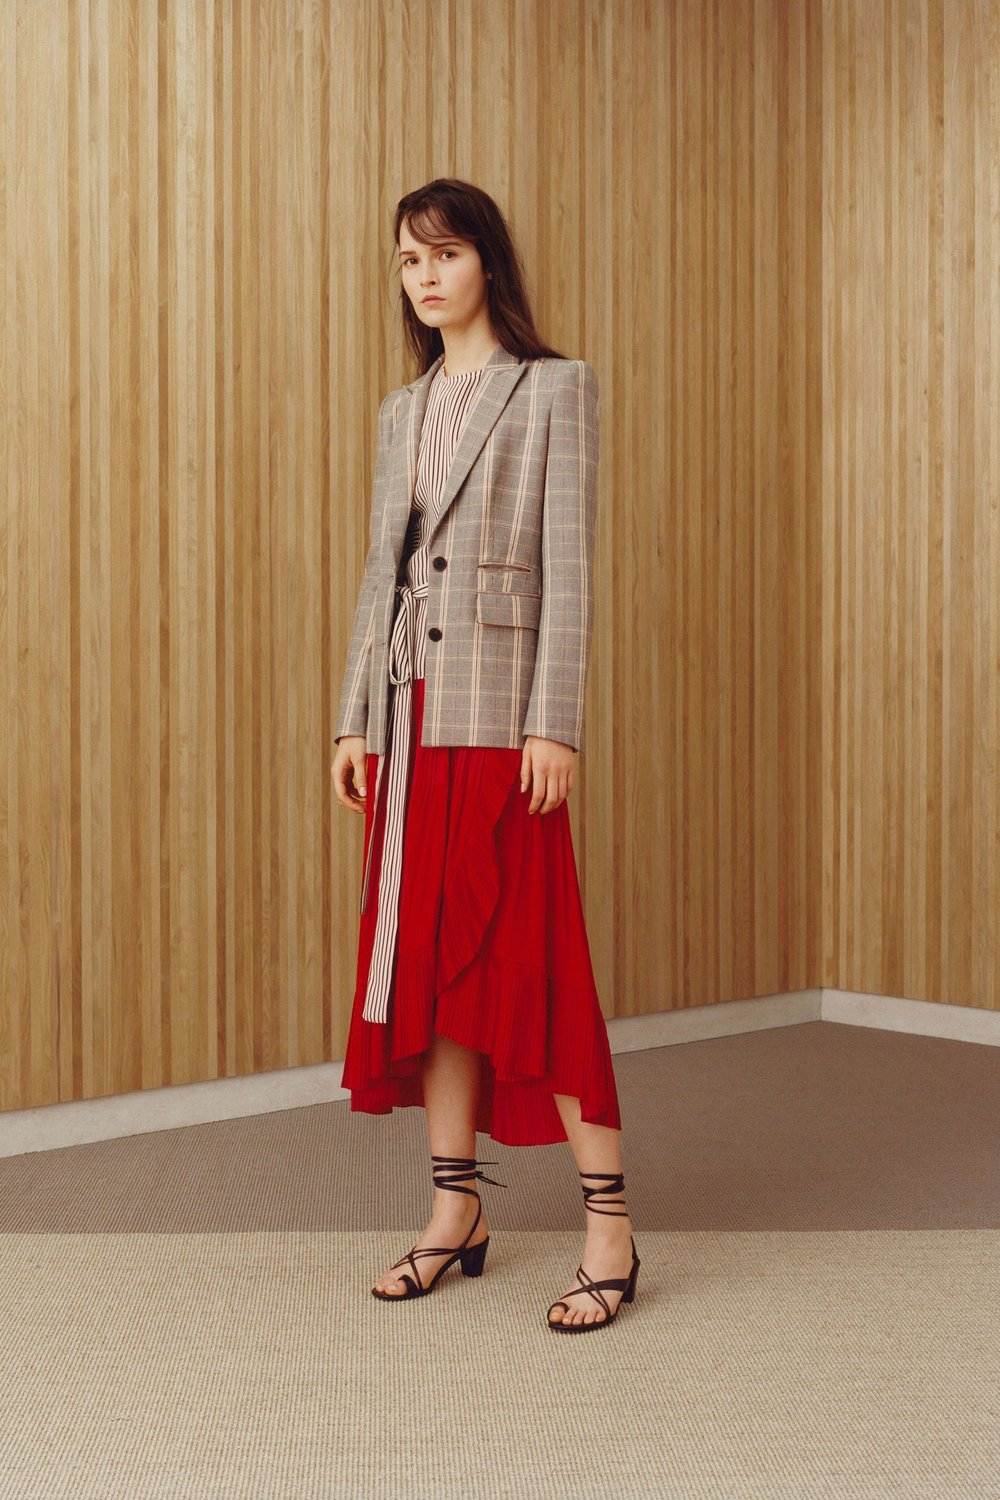 Maje-spring-2018-lookbook-the-impression-08.jpg